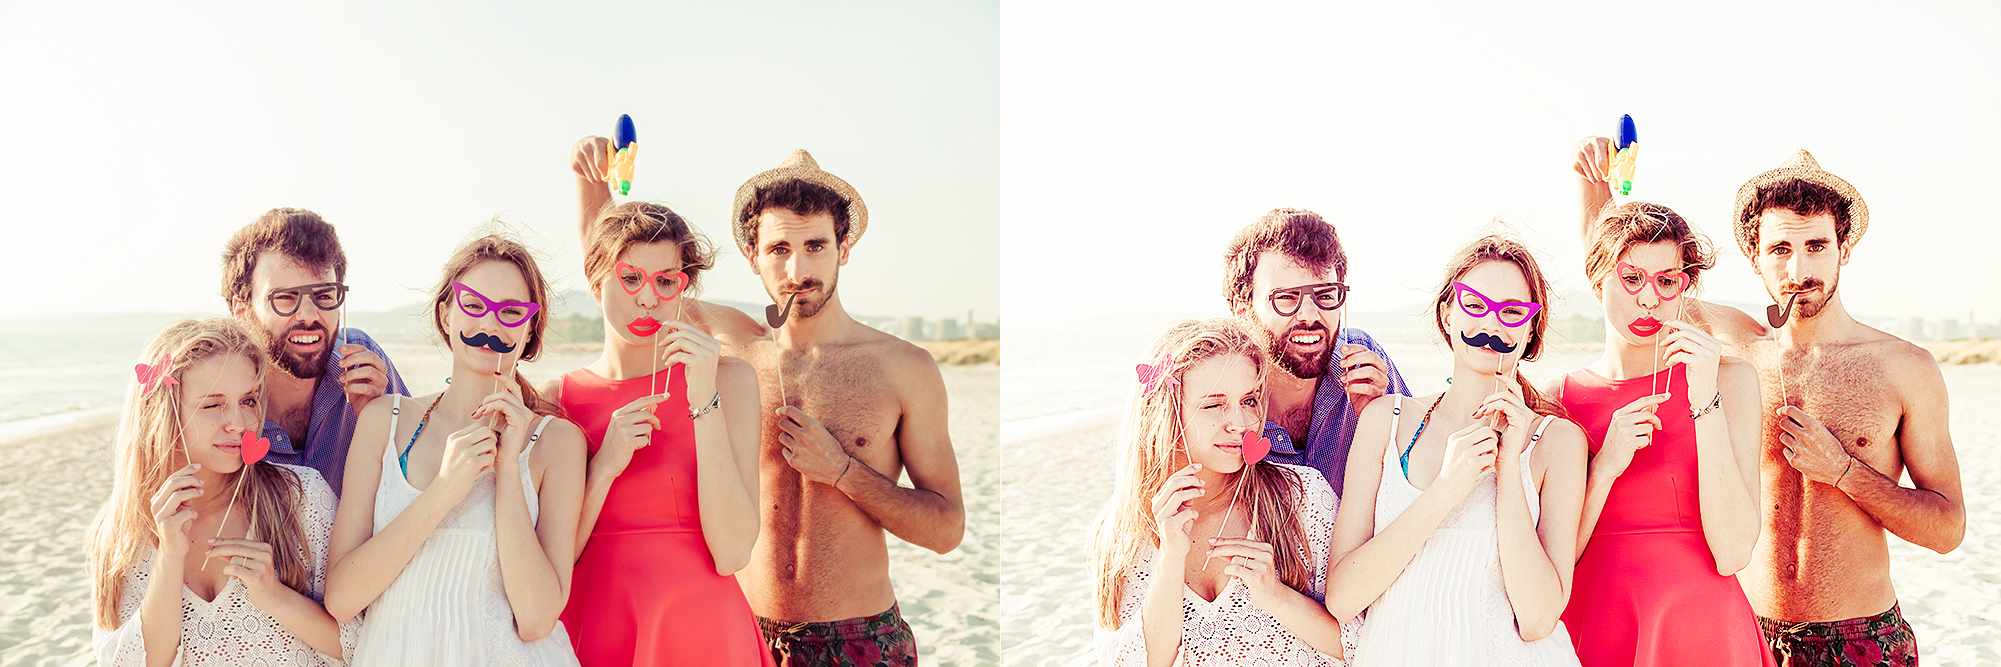 30 Summer Photoshop Actions Collection (Action for photoshop CS5,CS6,CC) example image 3